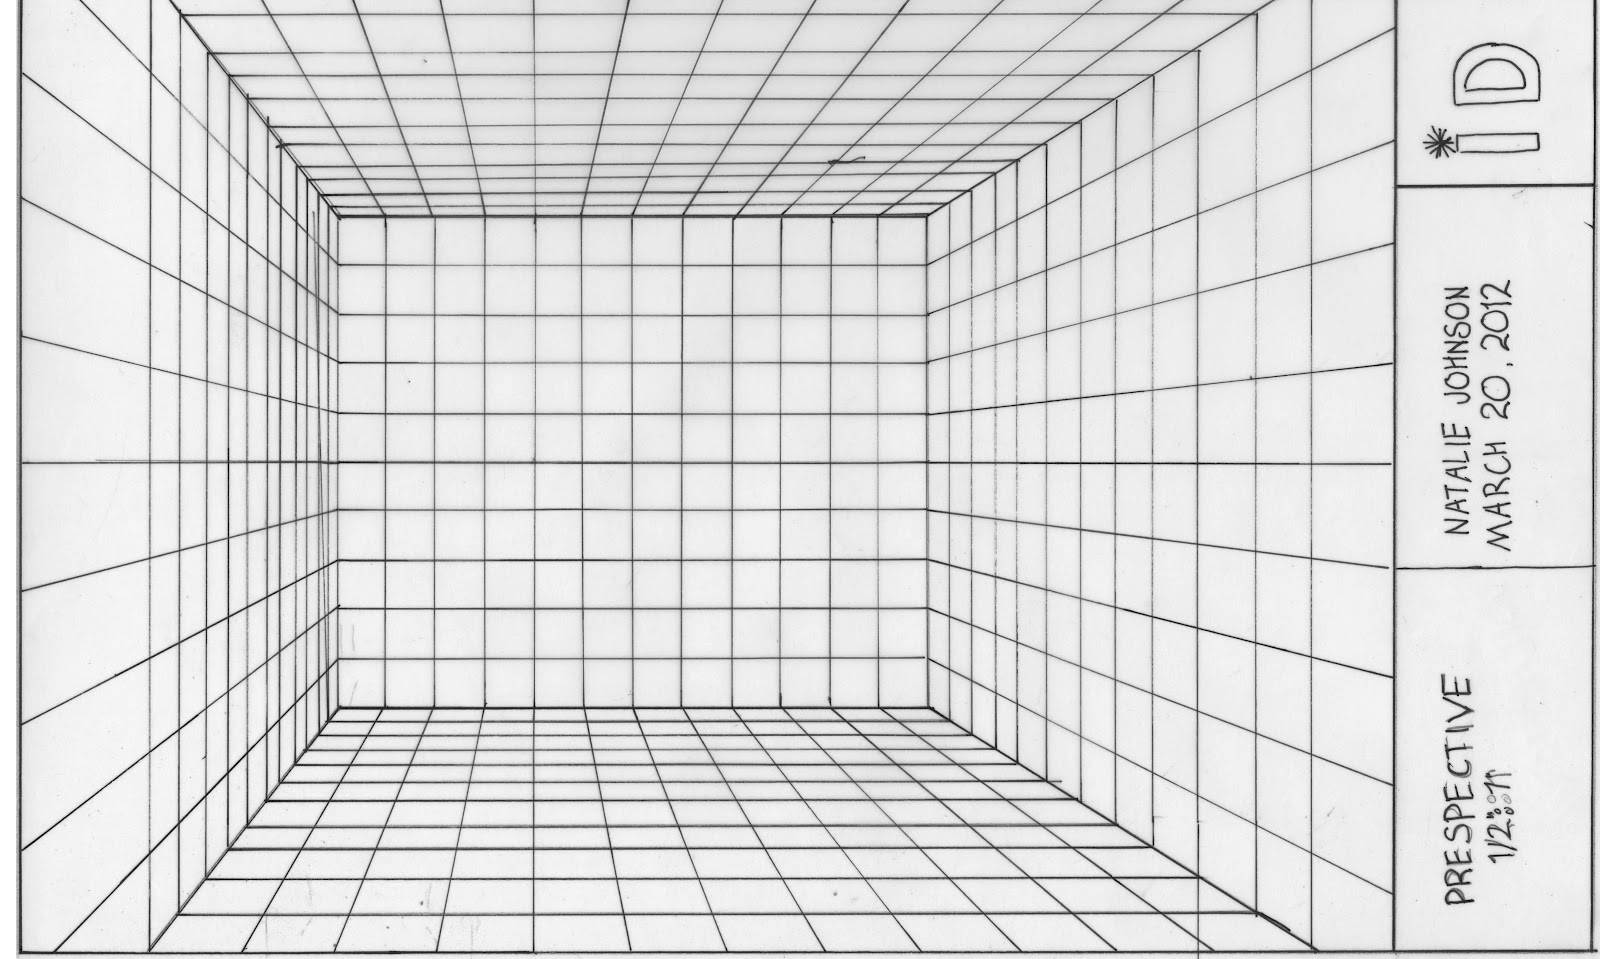 perspective template - Room Layout Grid